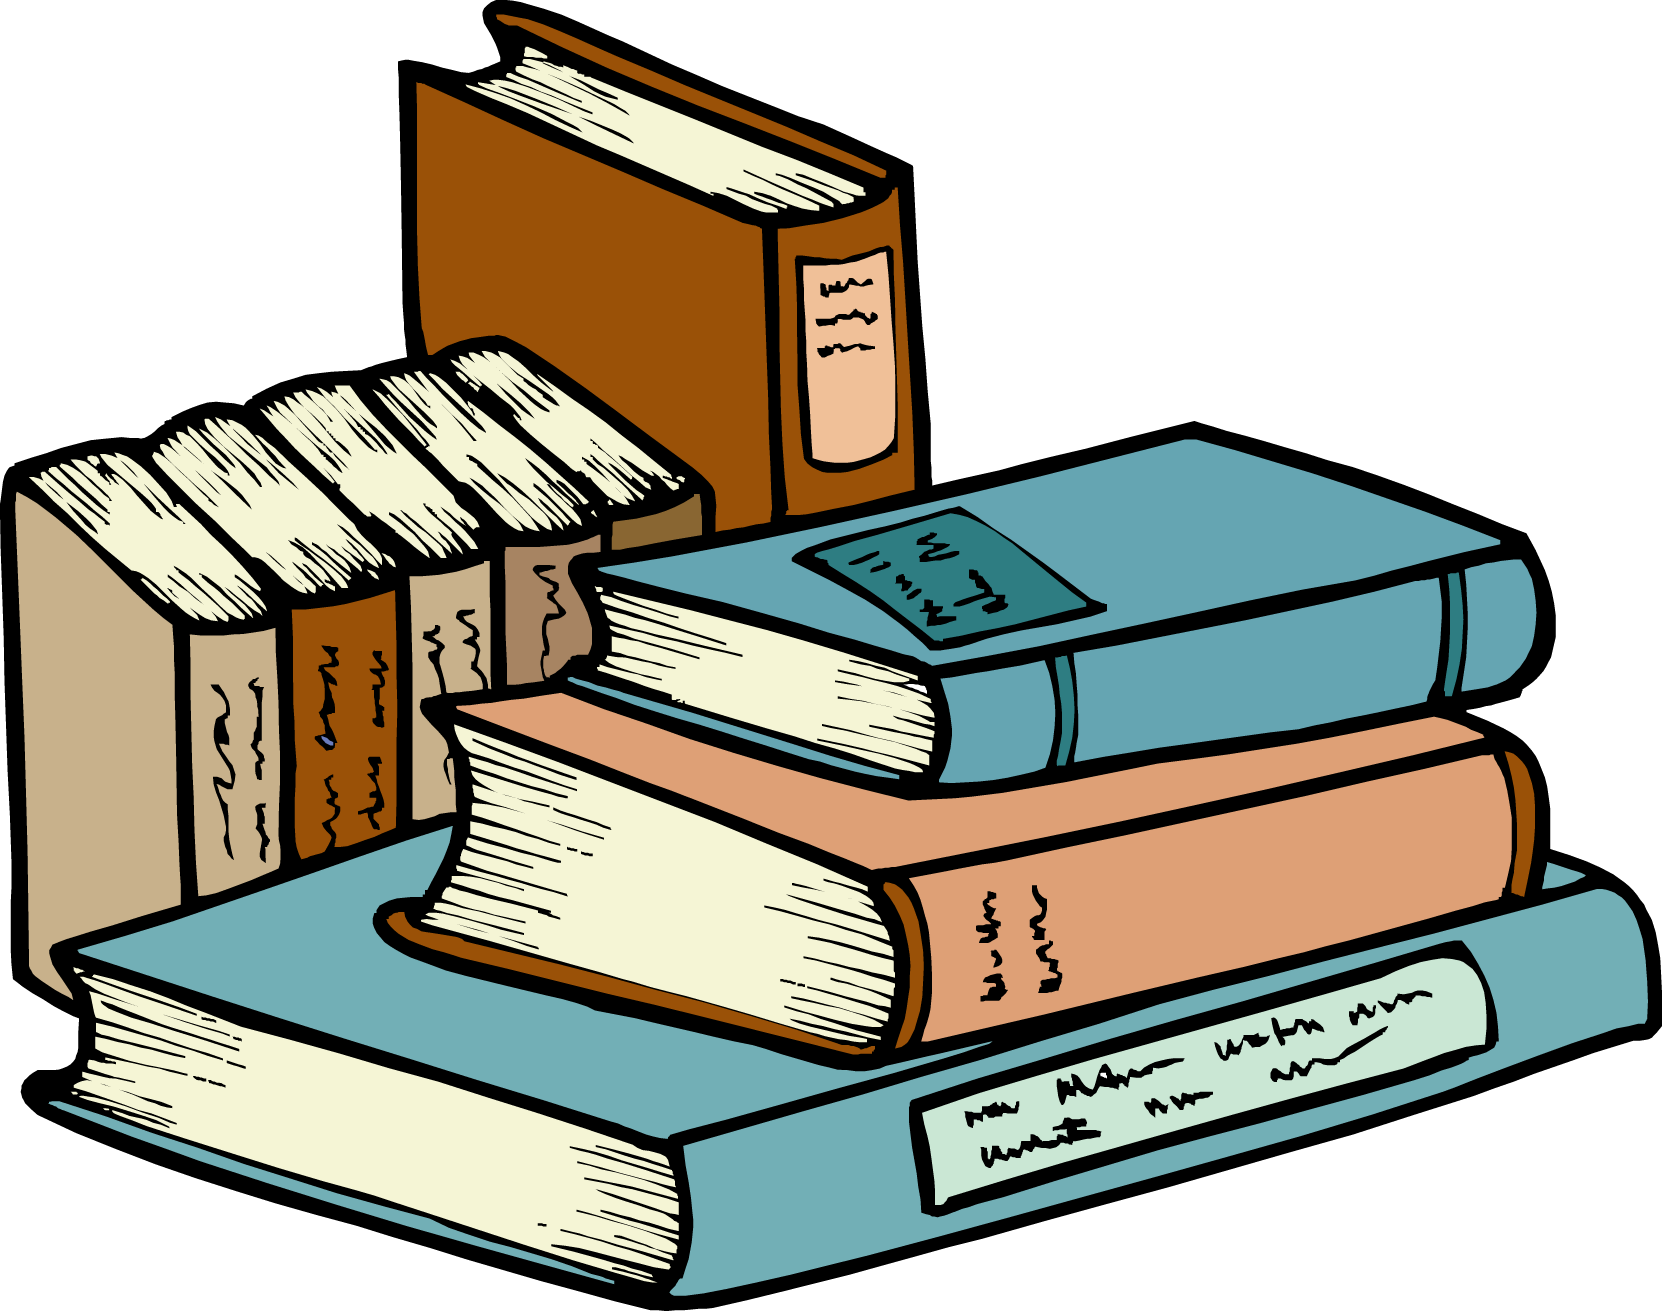 Library Books Clip Art | Clipart library - Free Clipart Images